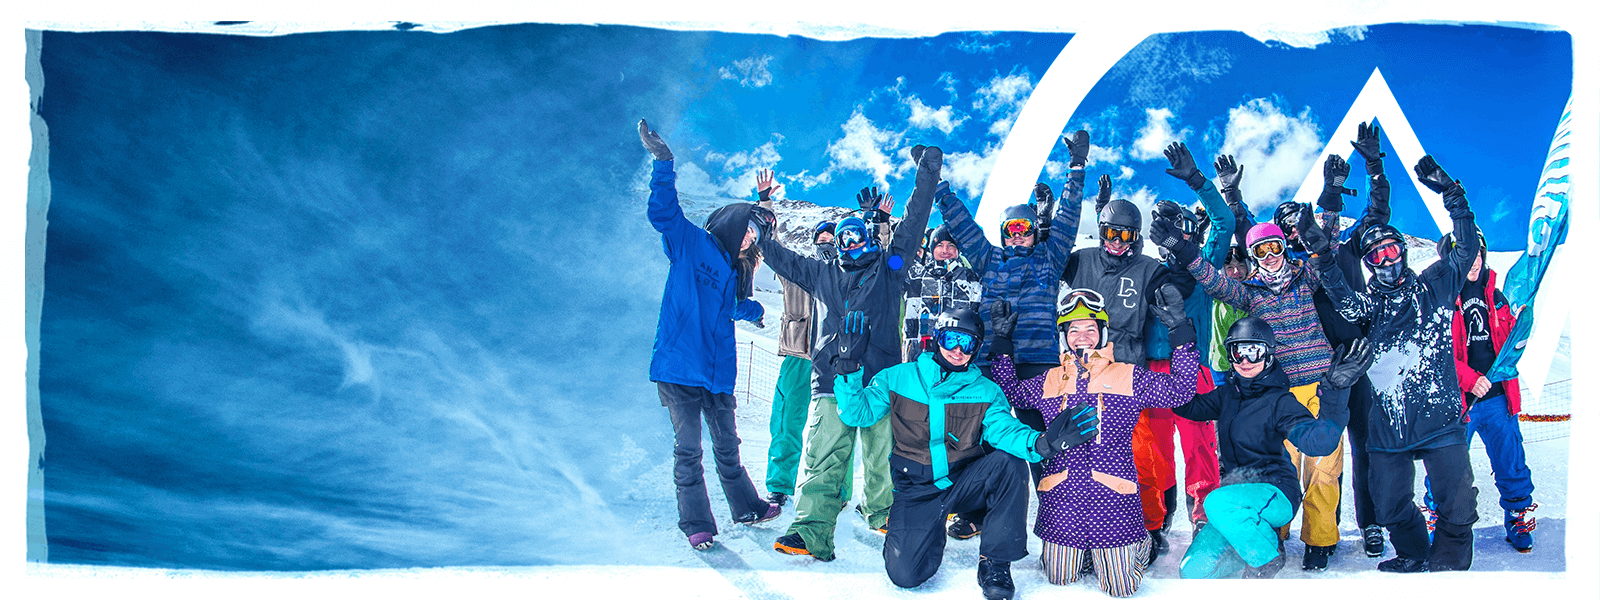 Wyjazd na narty i snowboard 29.12.2017 Puy Saint Vincent NEW YEAR'S WEEK